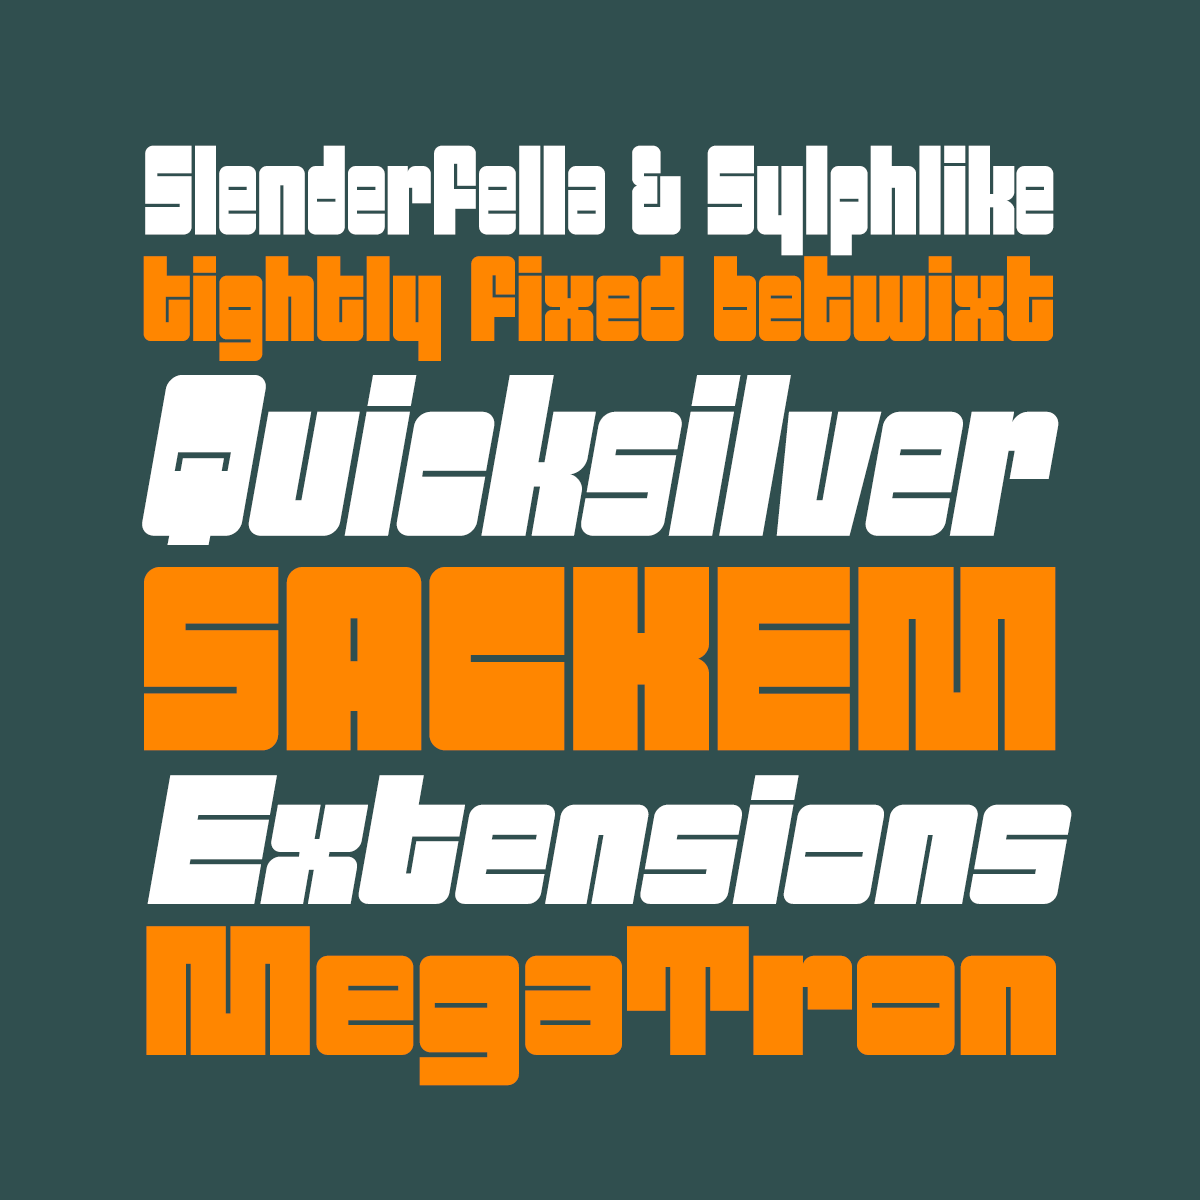 Sackem Family fonts by Pink Broccoli